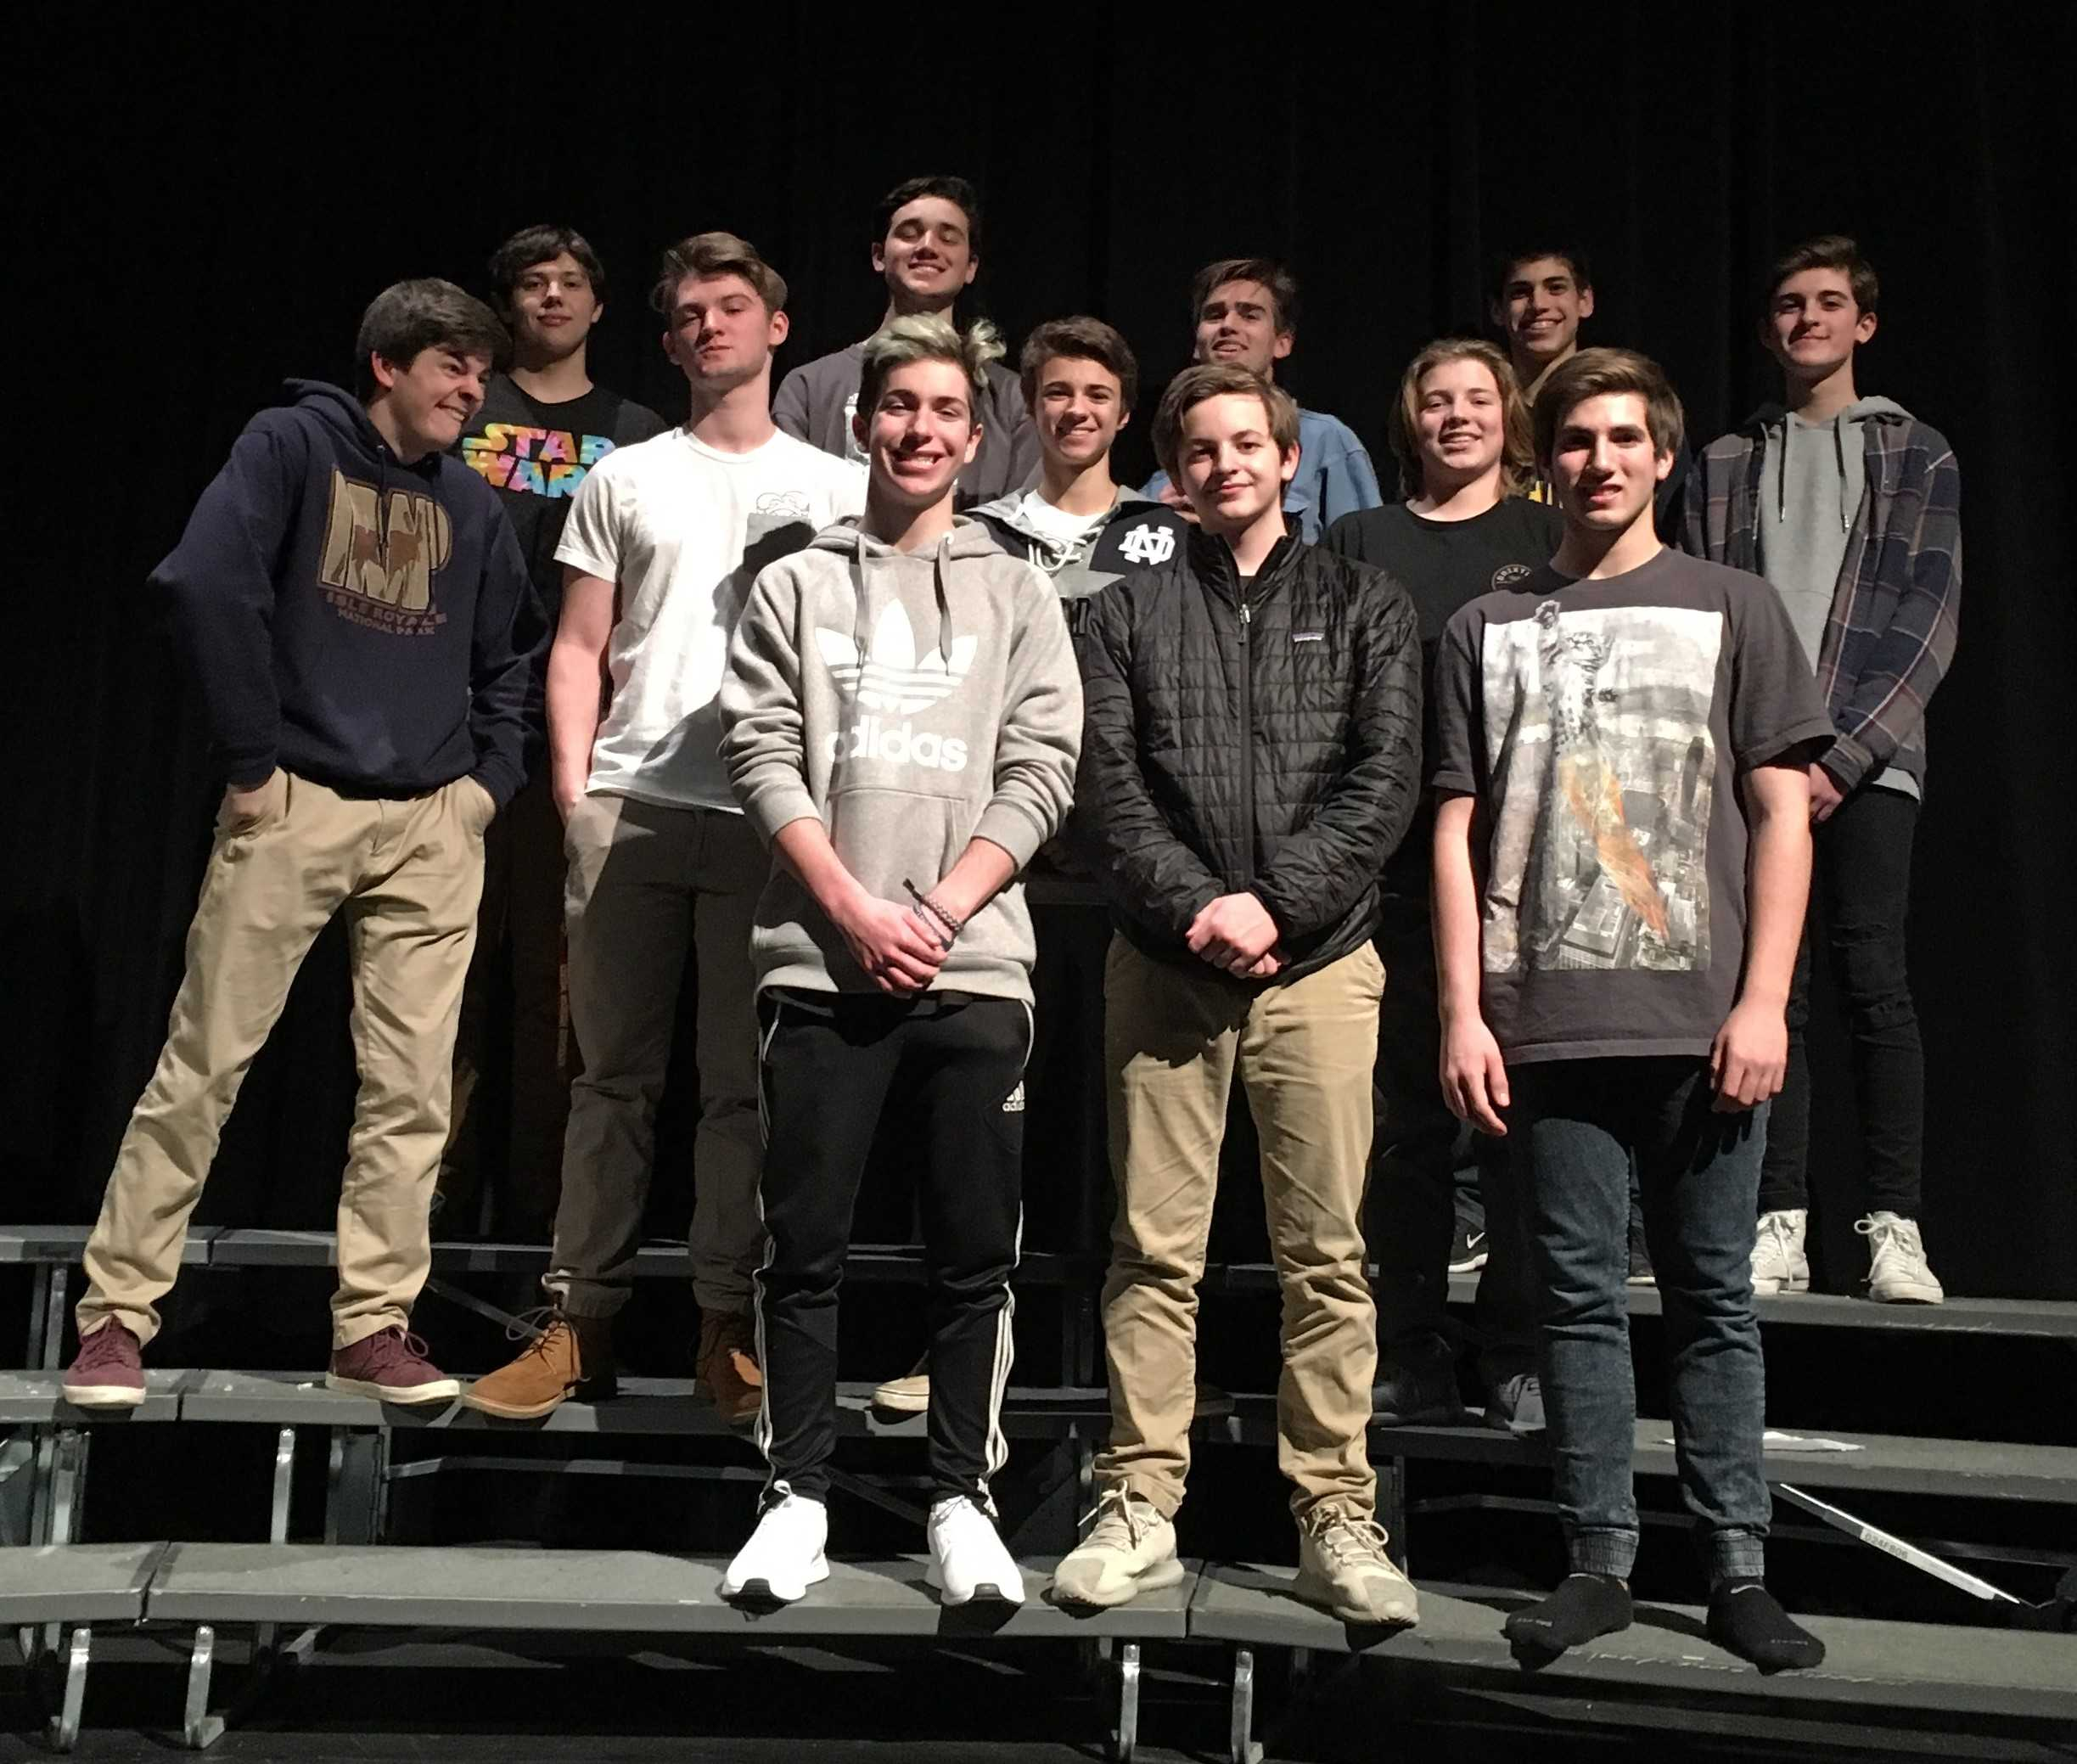 Boys' musical ensemble is an important aspect of The Little Shop of Horrors